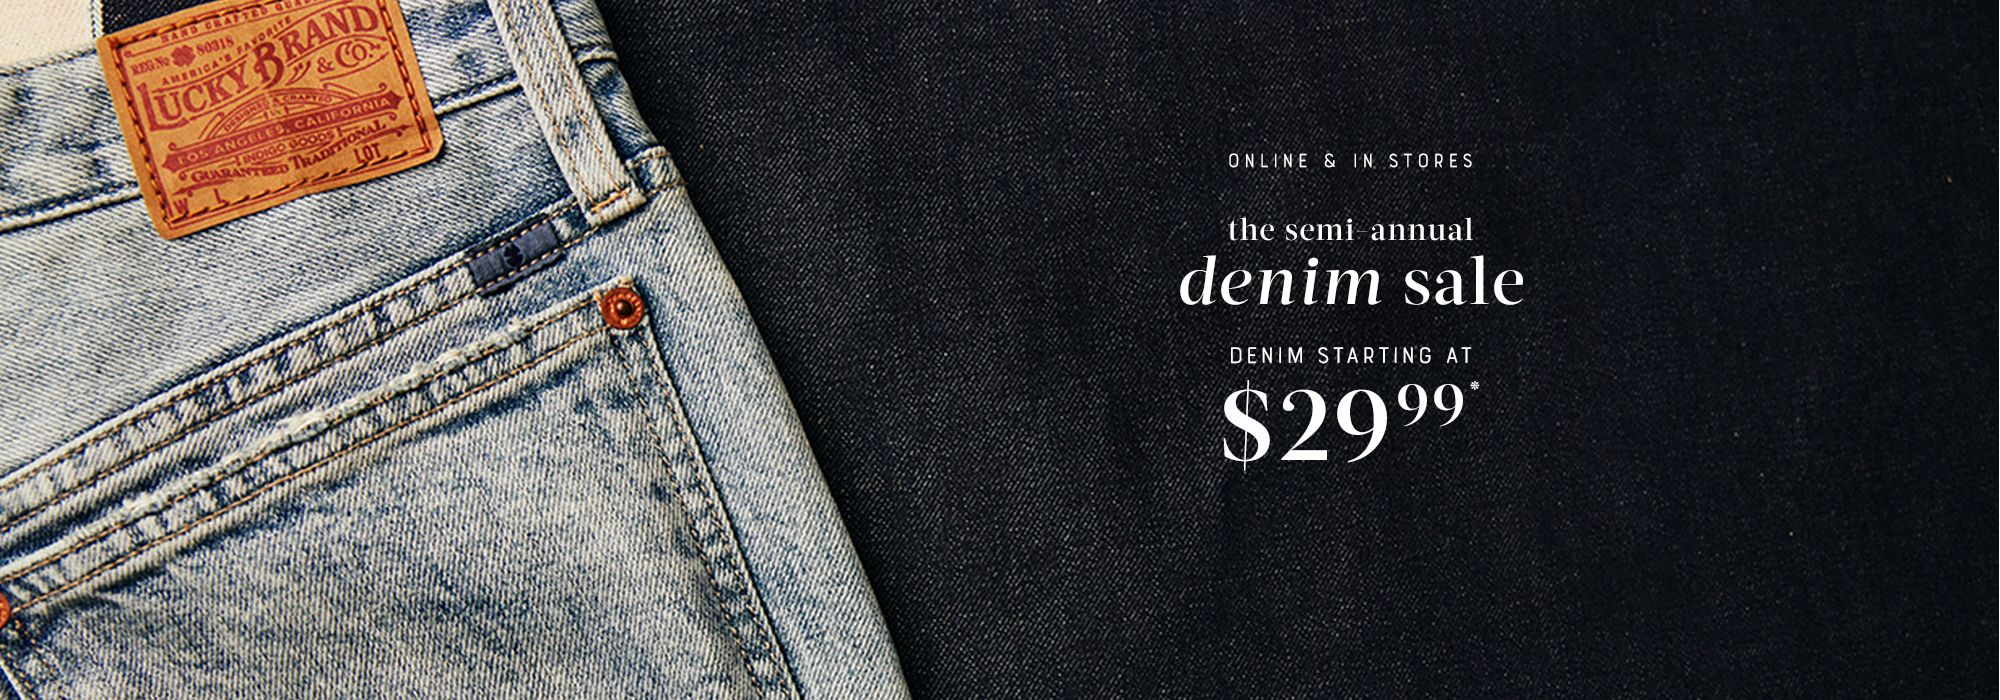 Semi Annual Denim Sale